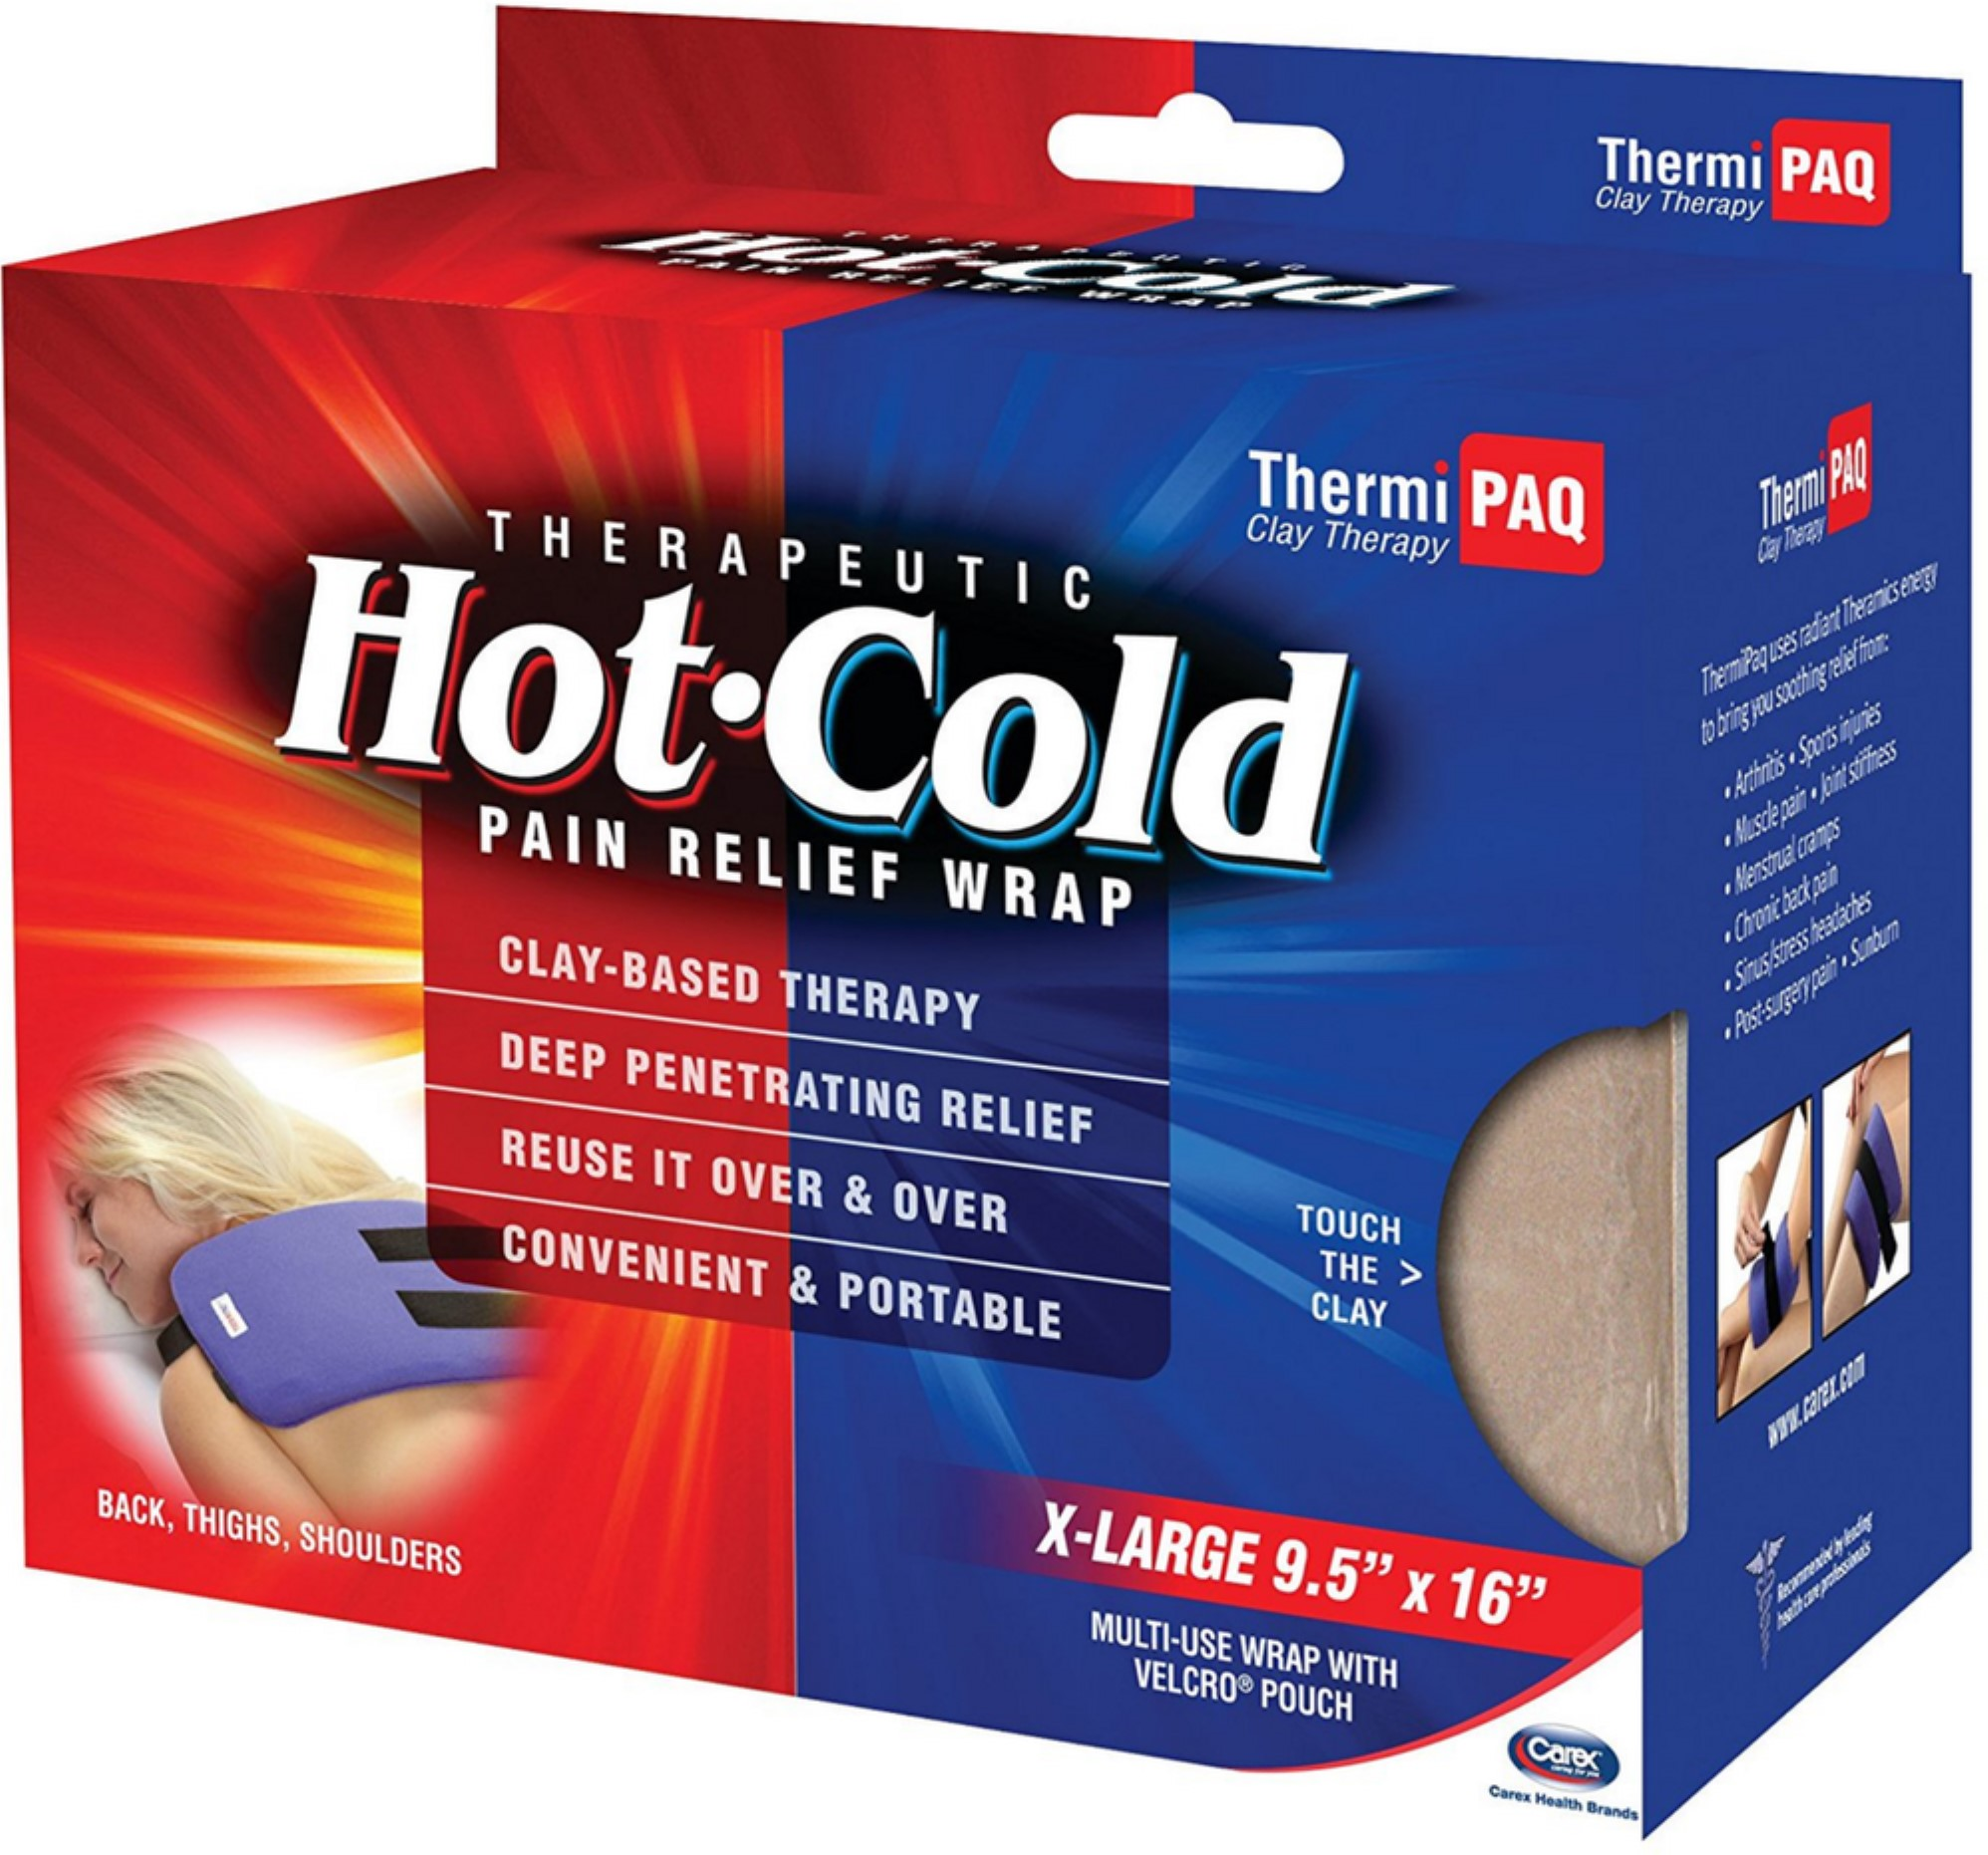 Thermipaq Hot-Cold Pain Relief Wrap, X-Large 1 ea